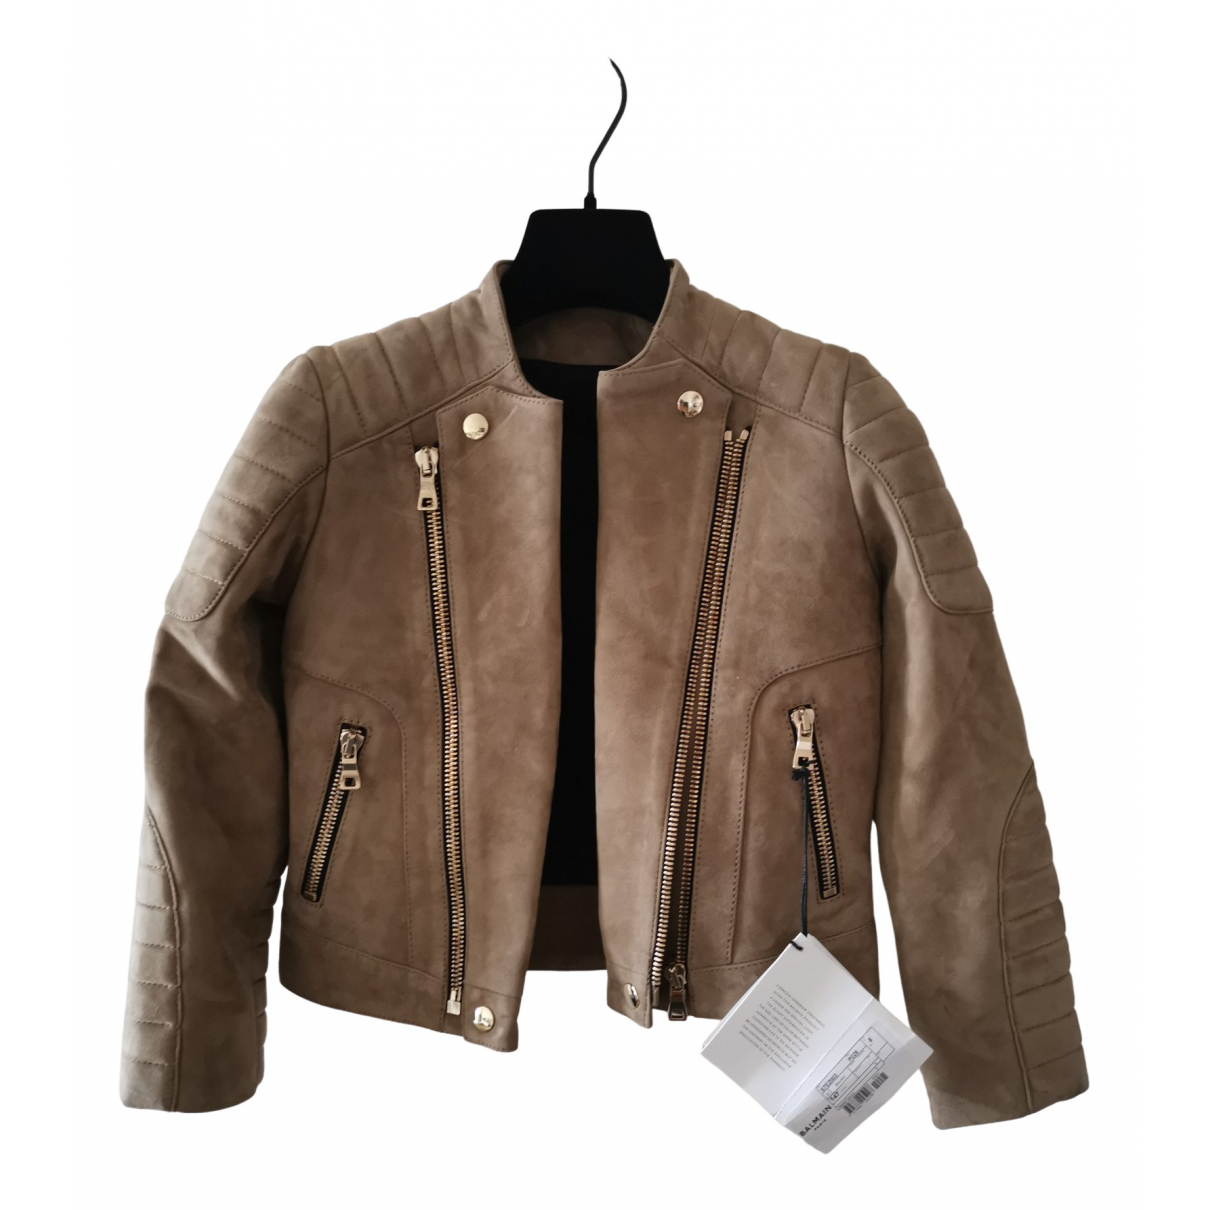 Balmain \N Beige Leather jacket & coat for Kids 8 years - until 50 inches UK